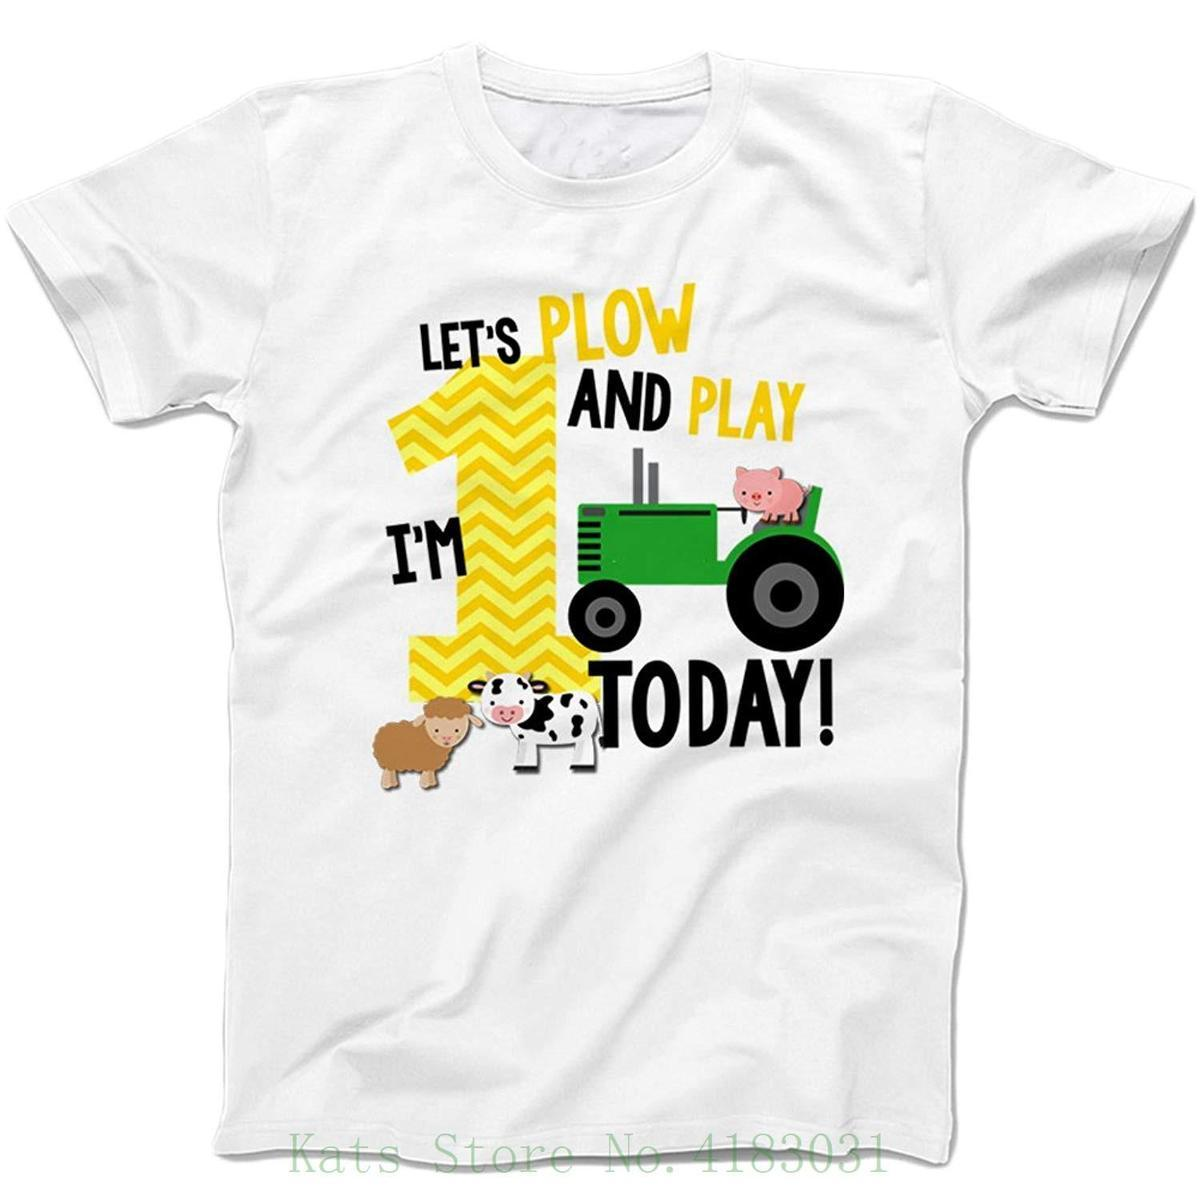 First Birthday Shirt Lets Plow And Play Farm Theme BoyS White Male Battery Funny Cotton Tops Team Shirts Trendy T For Men From